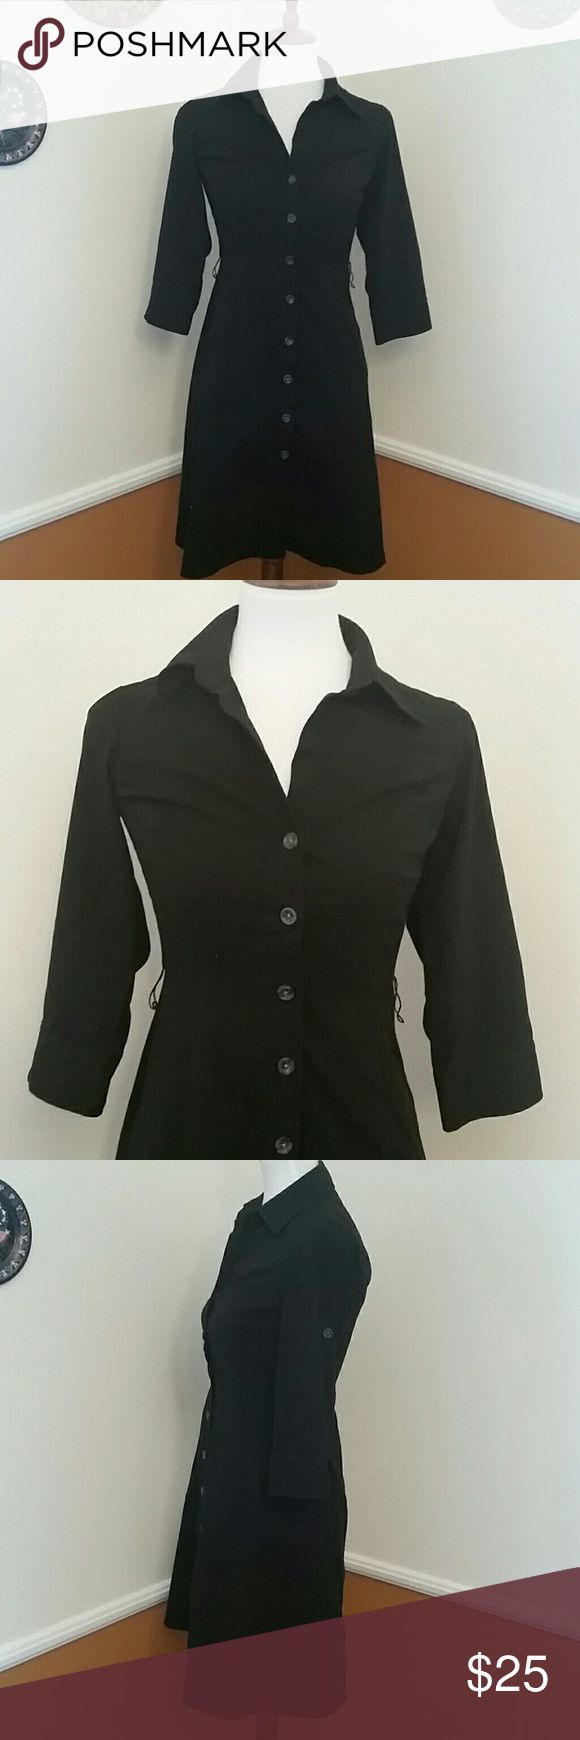 Ann Taylor size 0 black button up shirt dress Ann Taylor black button up shirt dress Pockets Collar Size 0 Buttons on sleeve allows you to roll them up Ann Taylor Dresses Midi